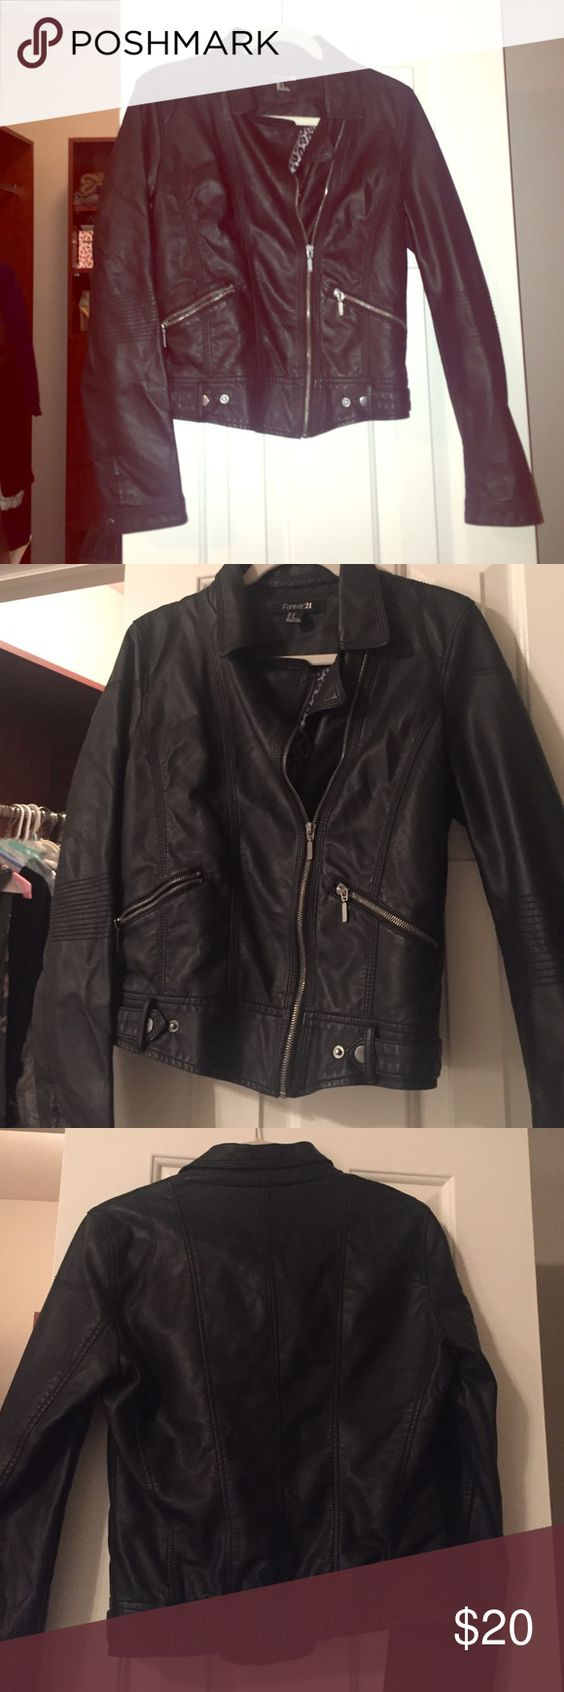 Adorable black leather jacket Black leather jacket from Forever 21. Barely worn, on trend. Size, medium Forever 21 Jackets & Coats Utility Jackets